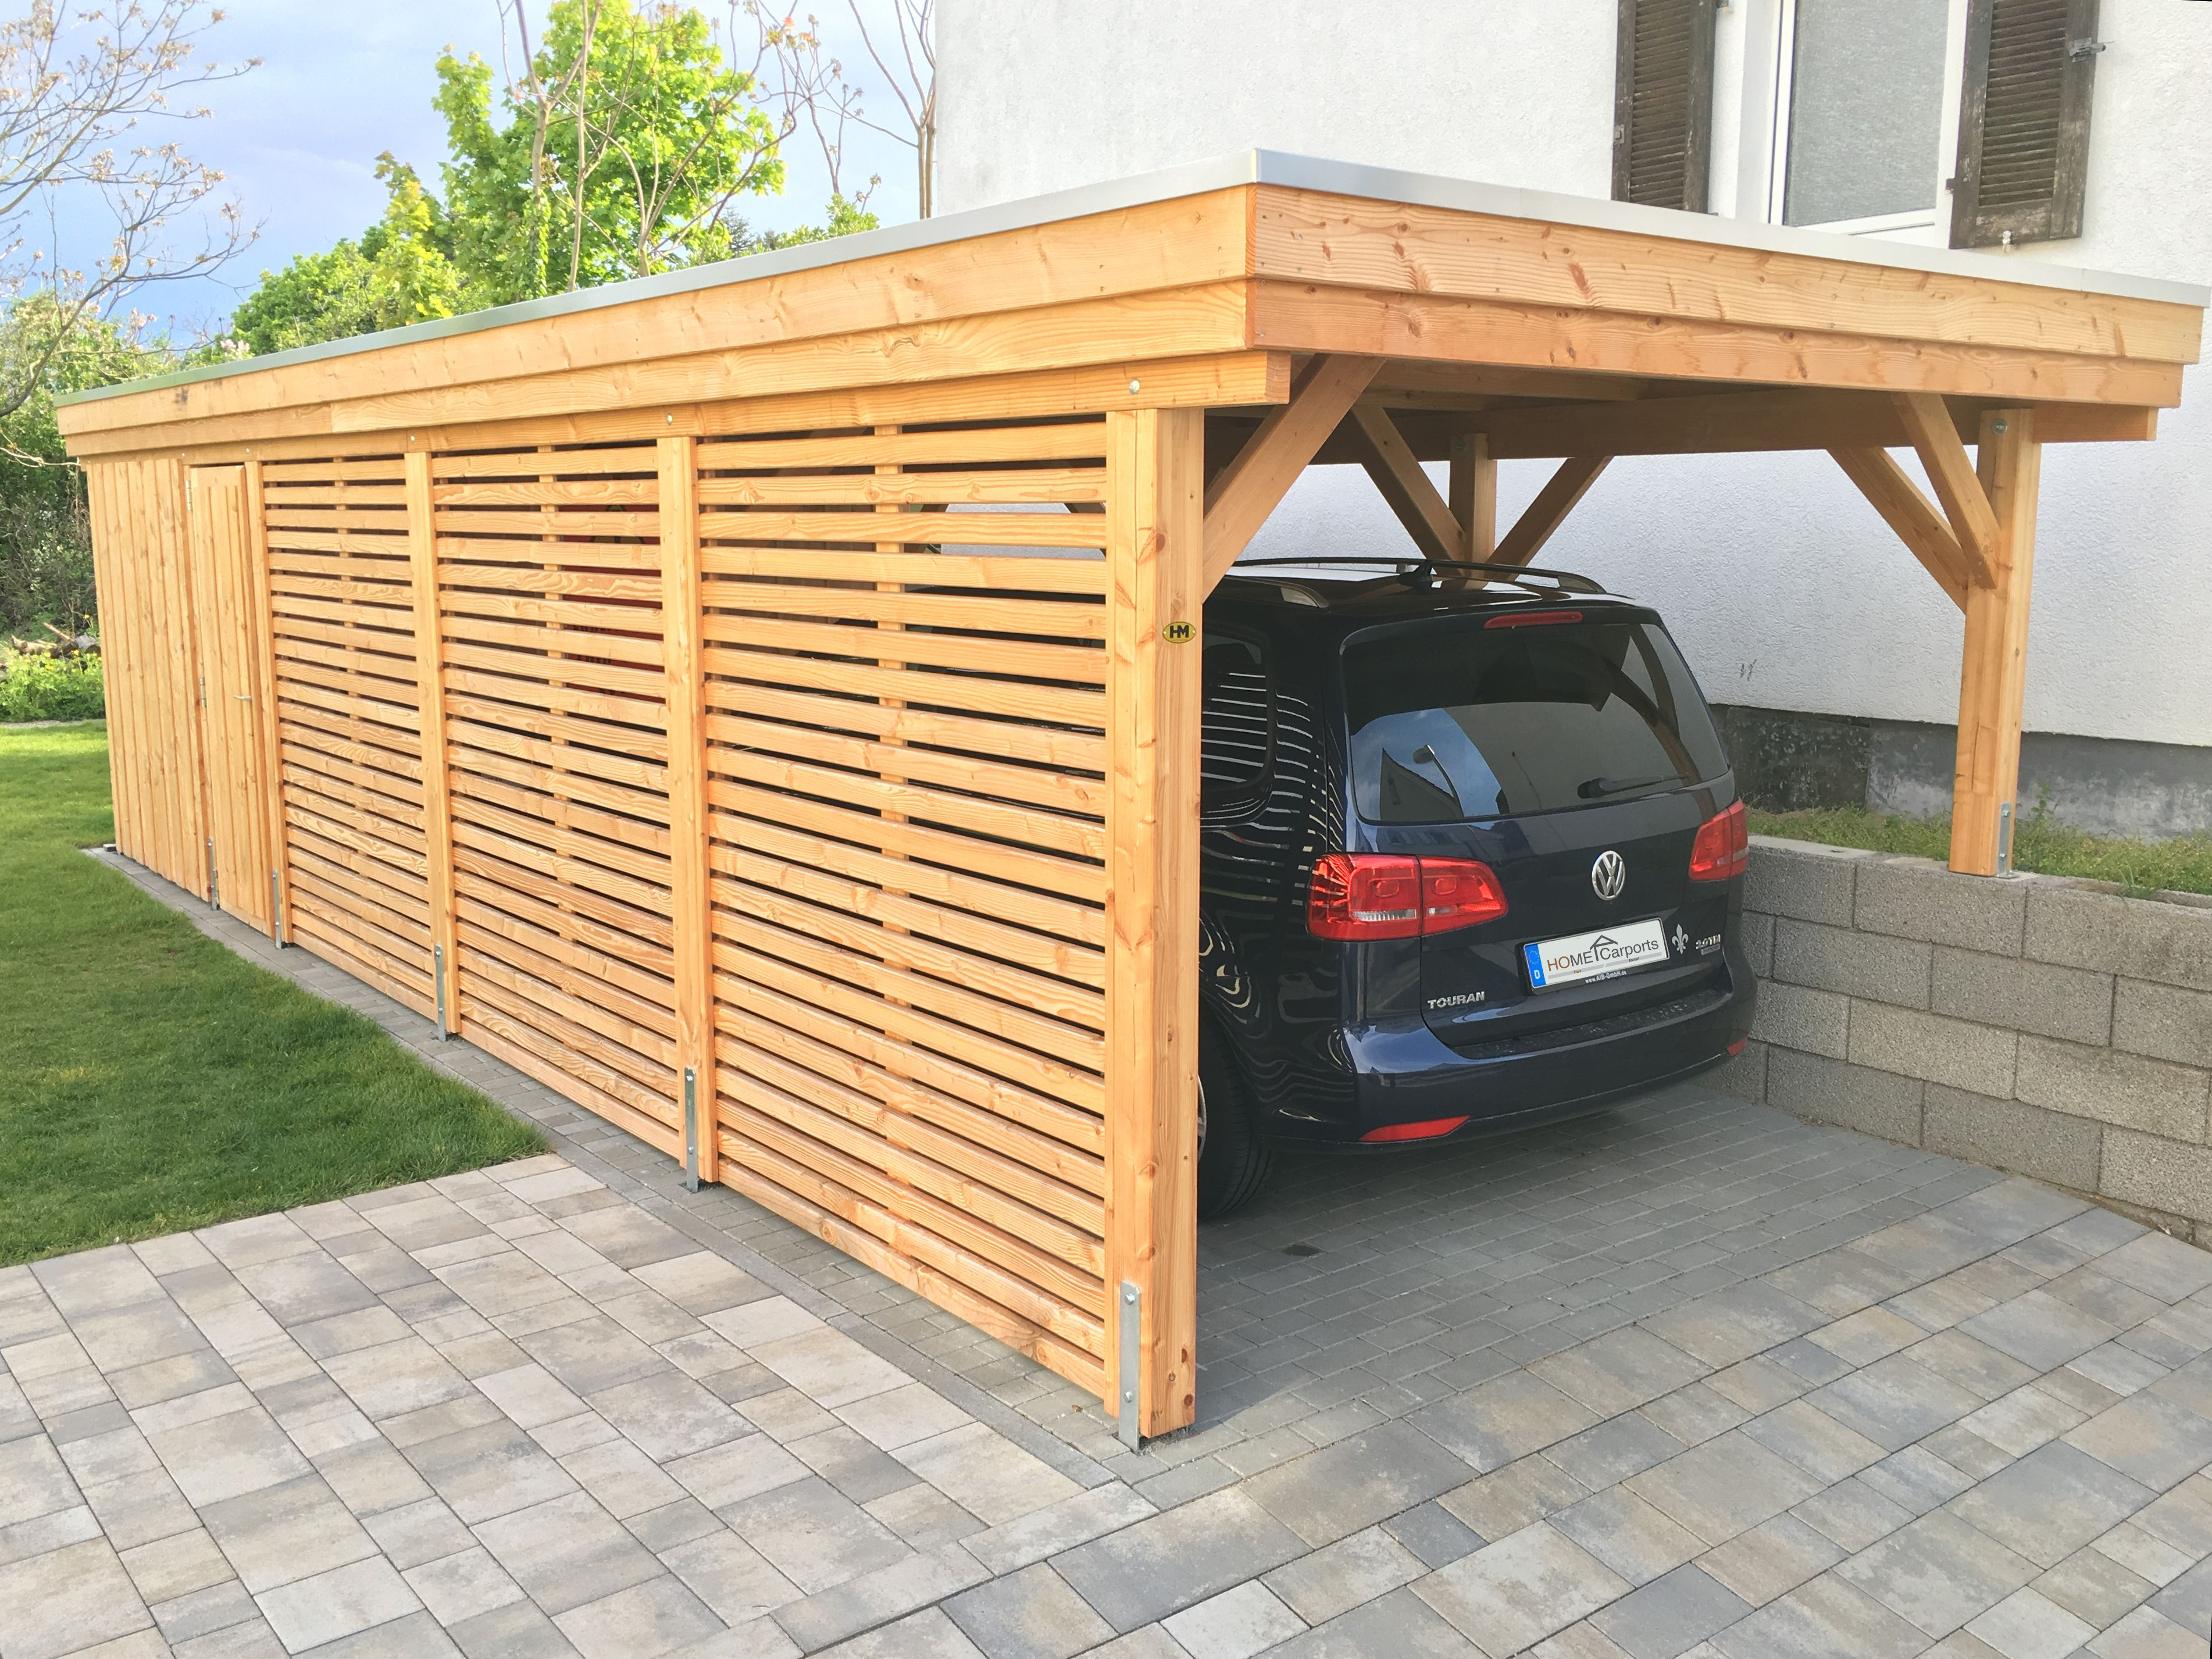 Pin by HOMECarports on Flachdach Carport Outdoor